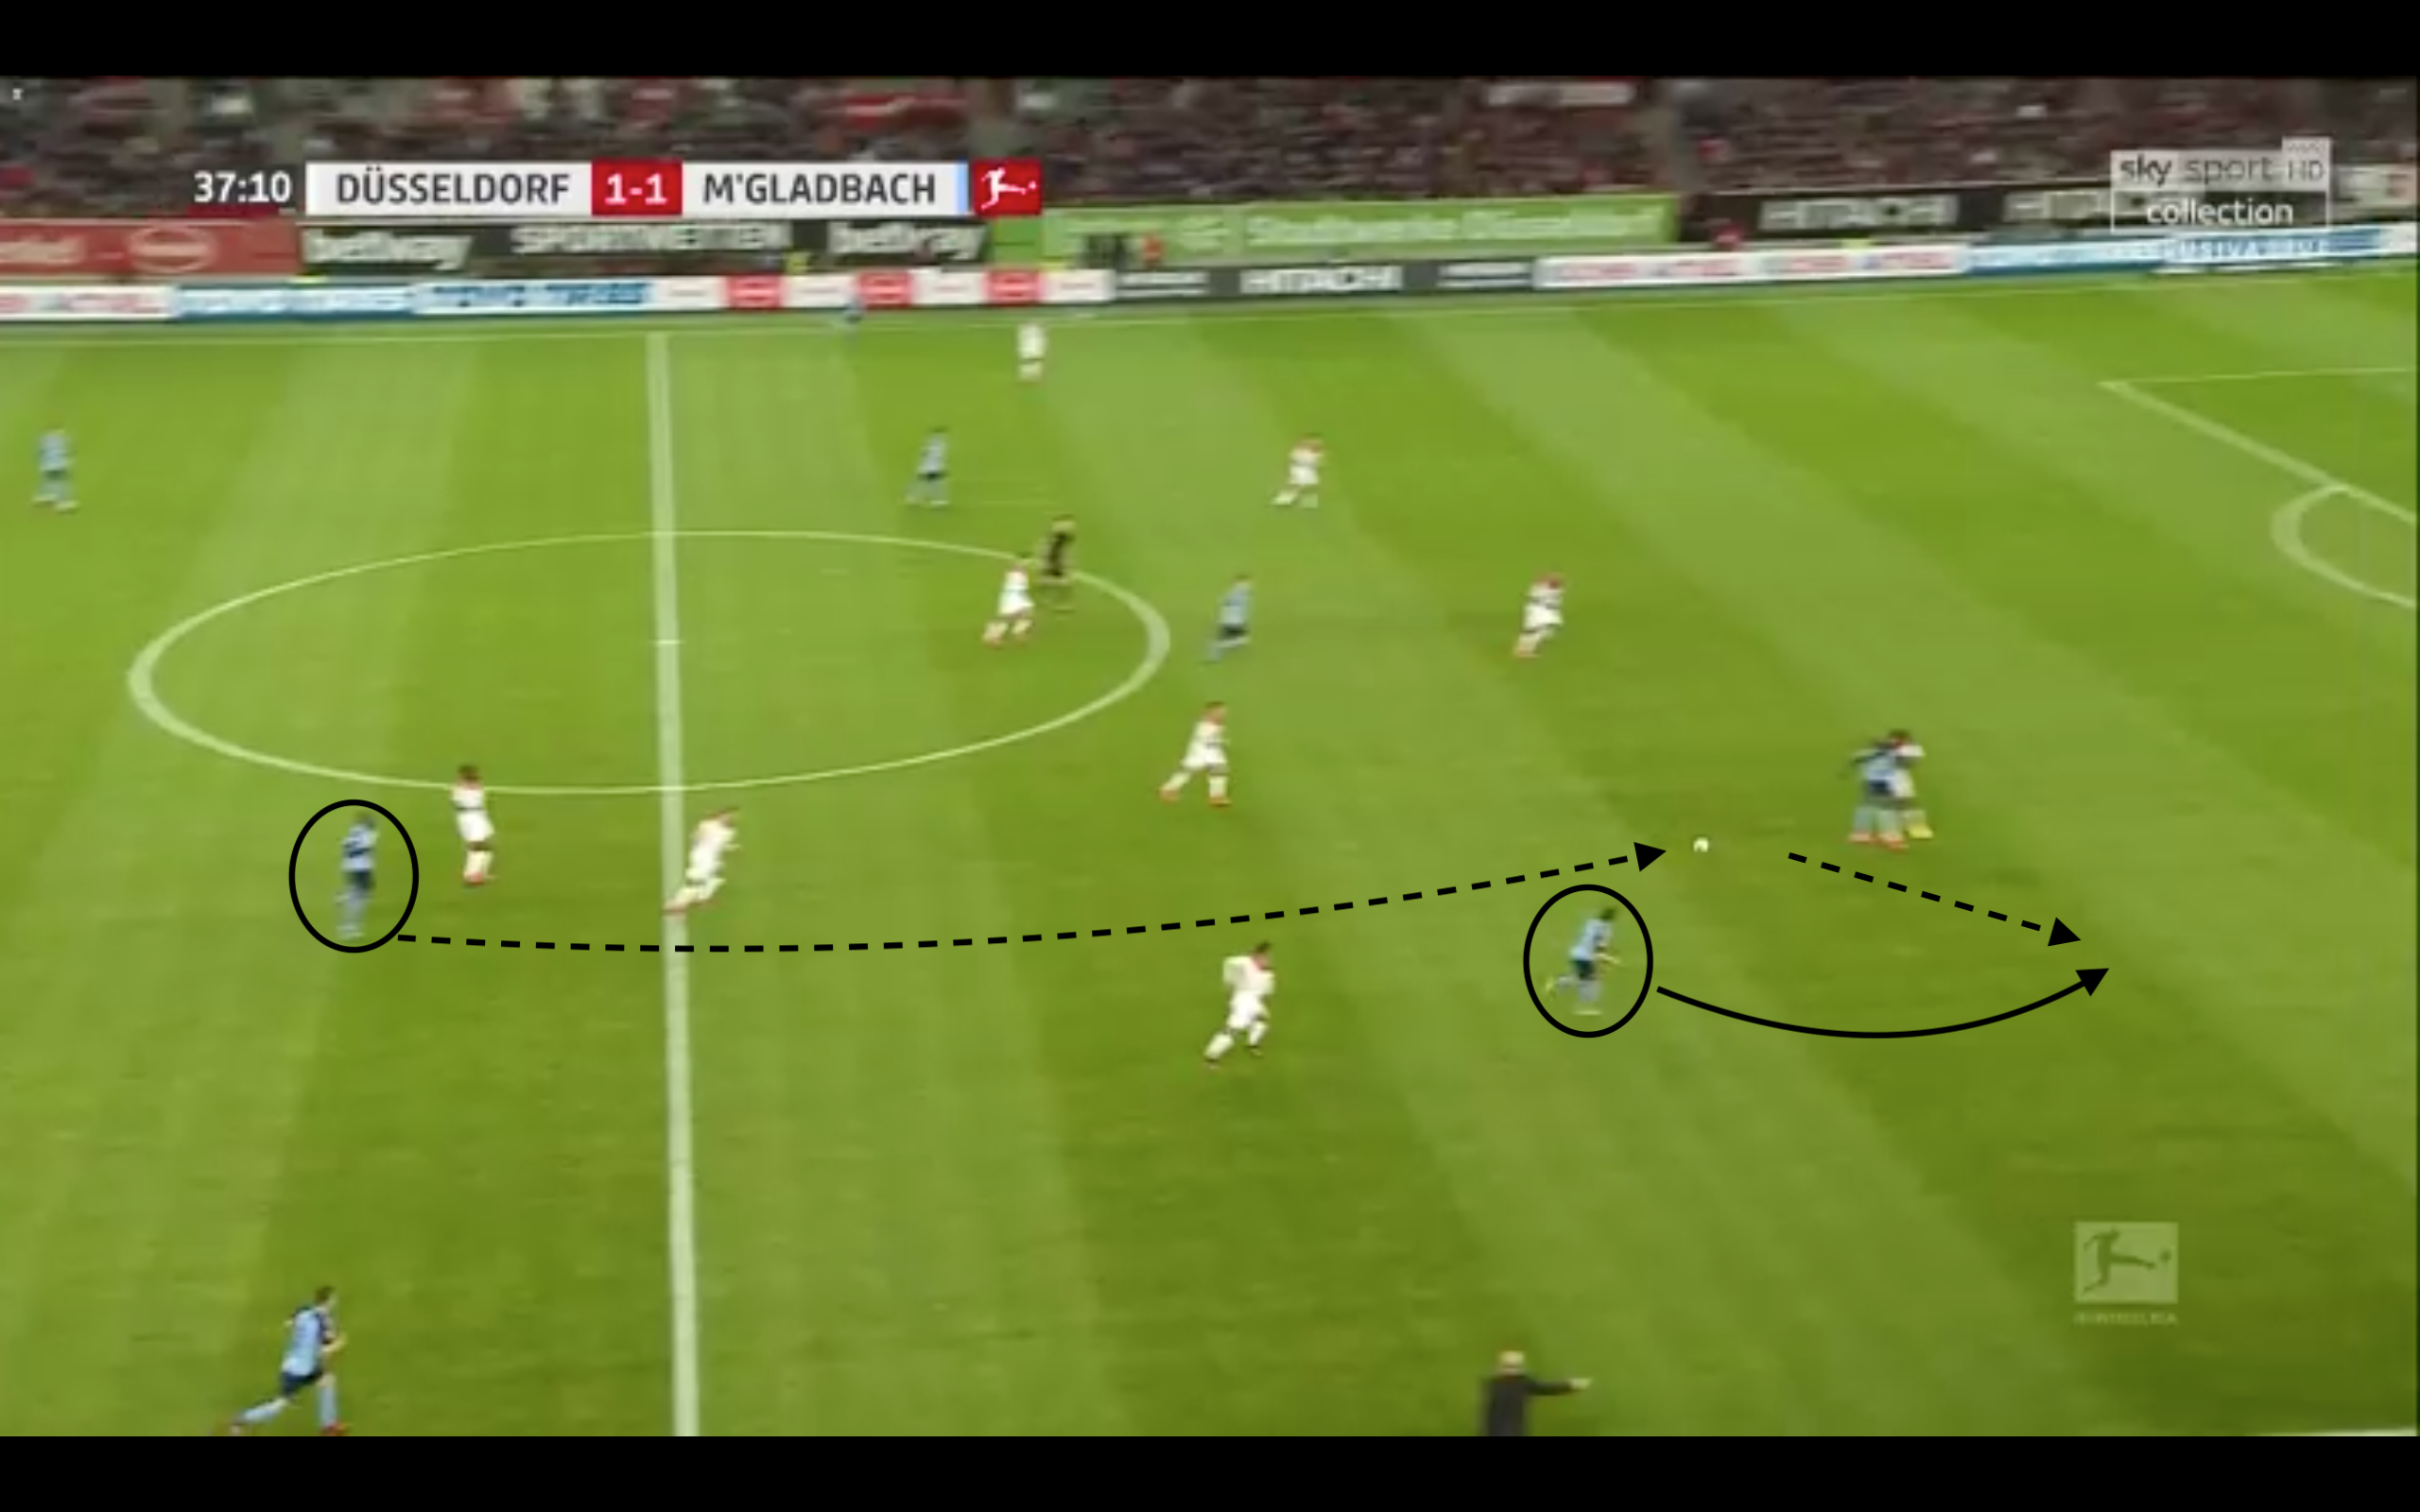 Bundesliga 2019/20: Fortuna Düsseldorf vs Borussia Mönchengladbach – tactical analysis tactics